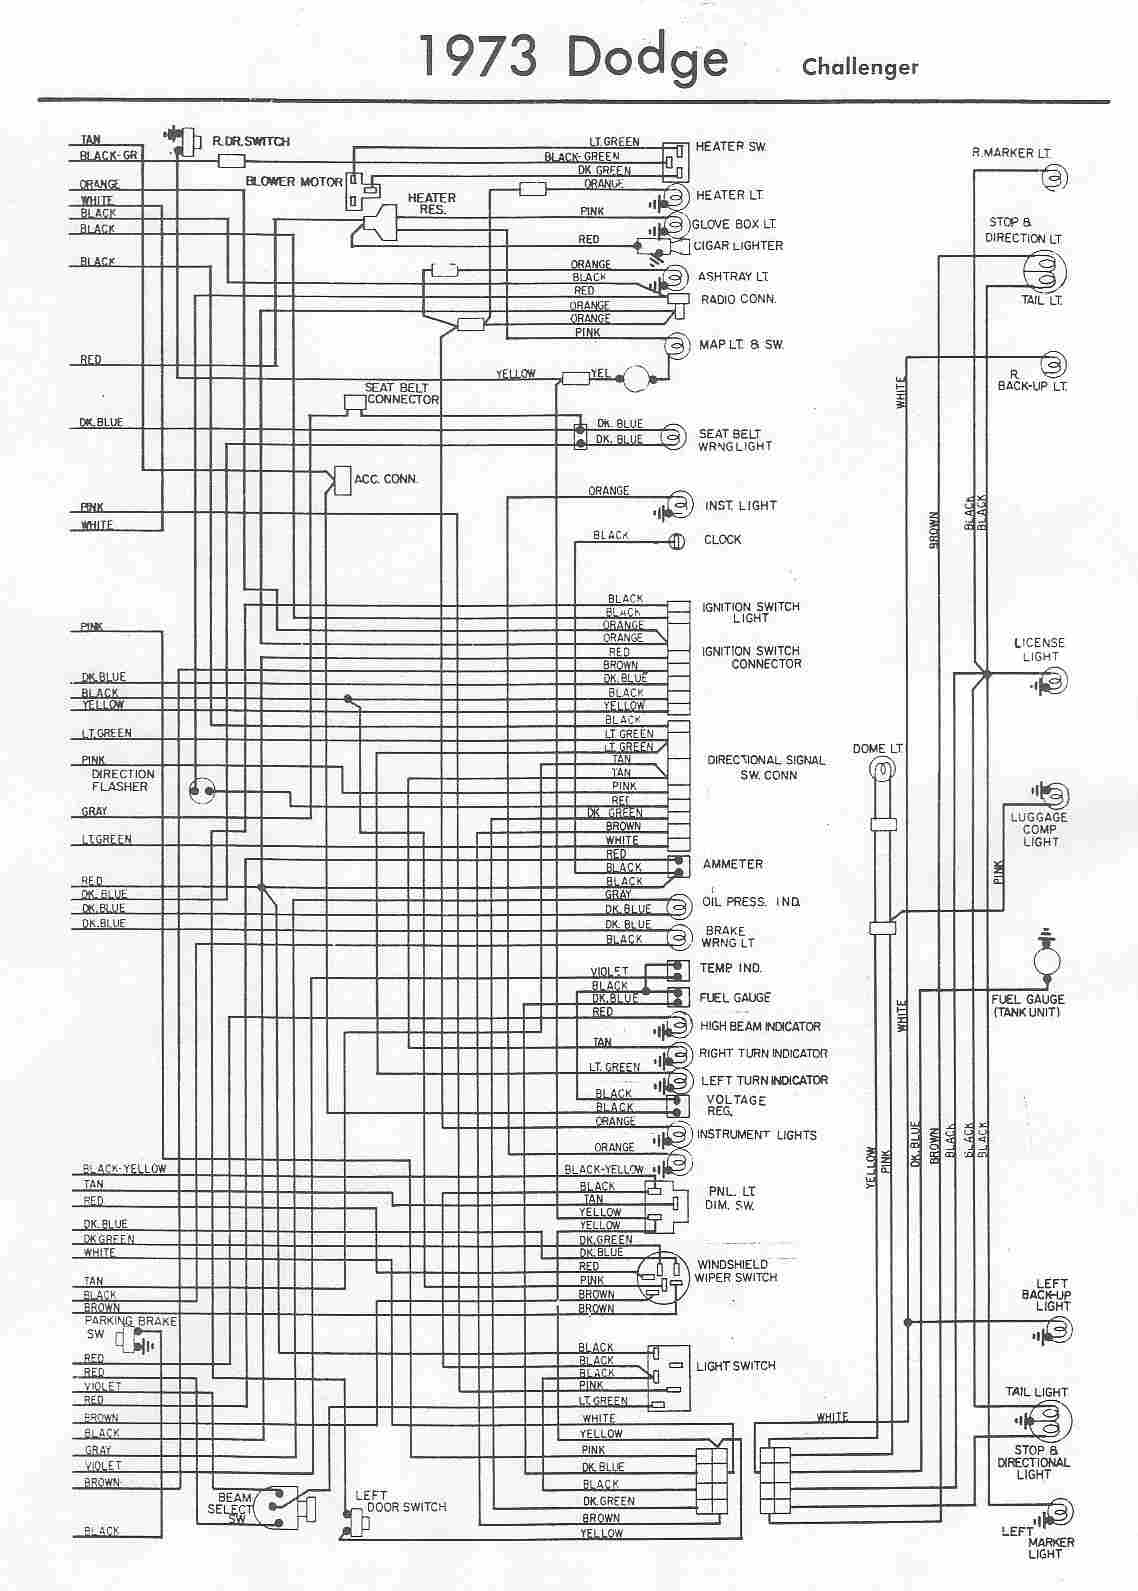 Dodge Car Manuals Wiring Diagrams Pdf Fault Codes 2009 Challenger Fuse Box Diagram Electrical Of 1973